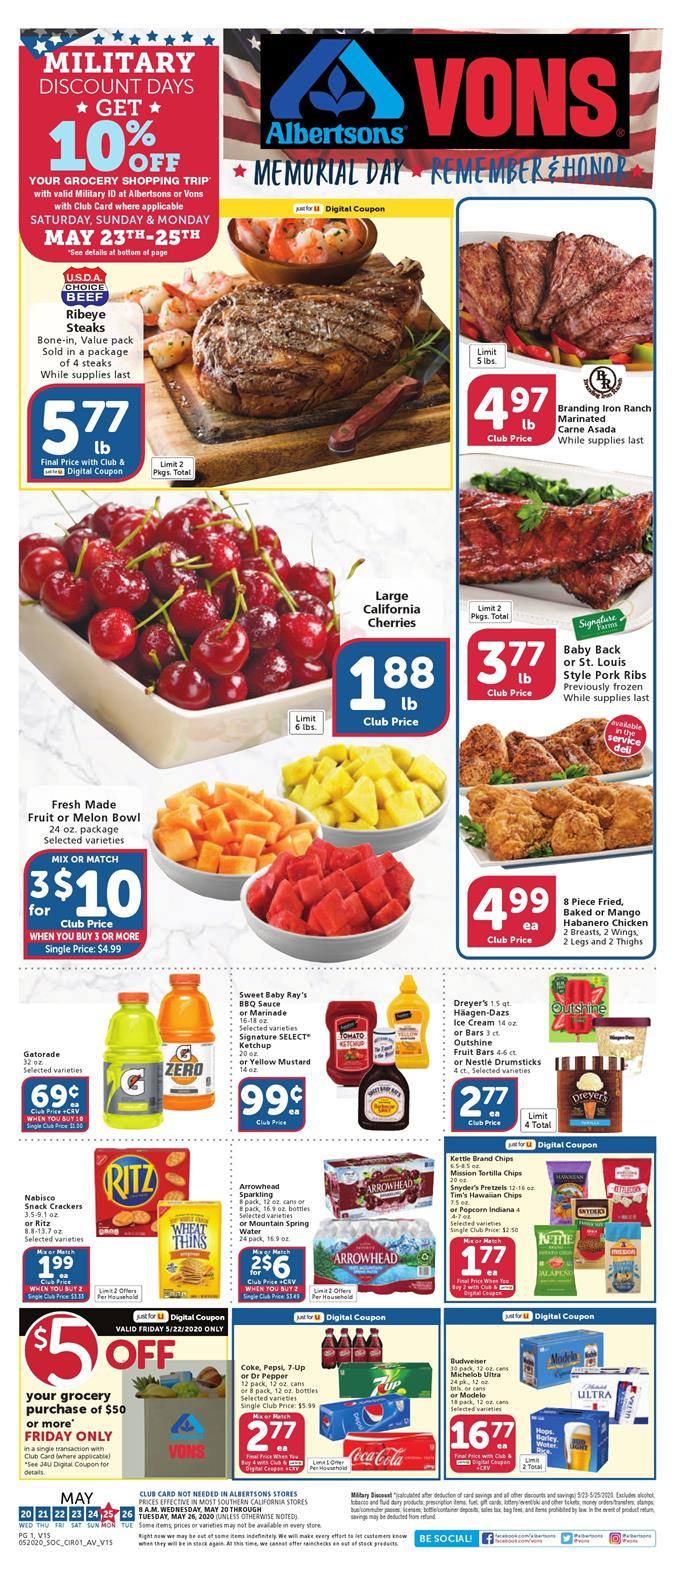 vons weekly ad may 20 2020